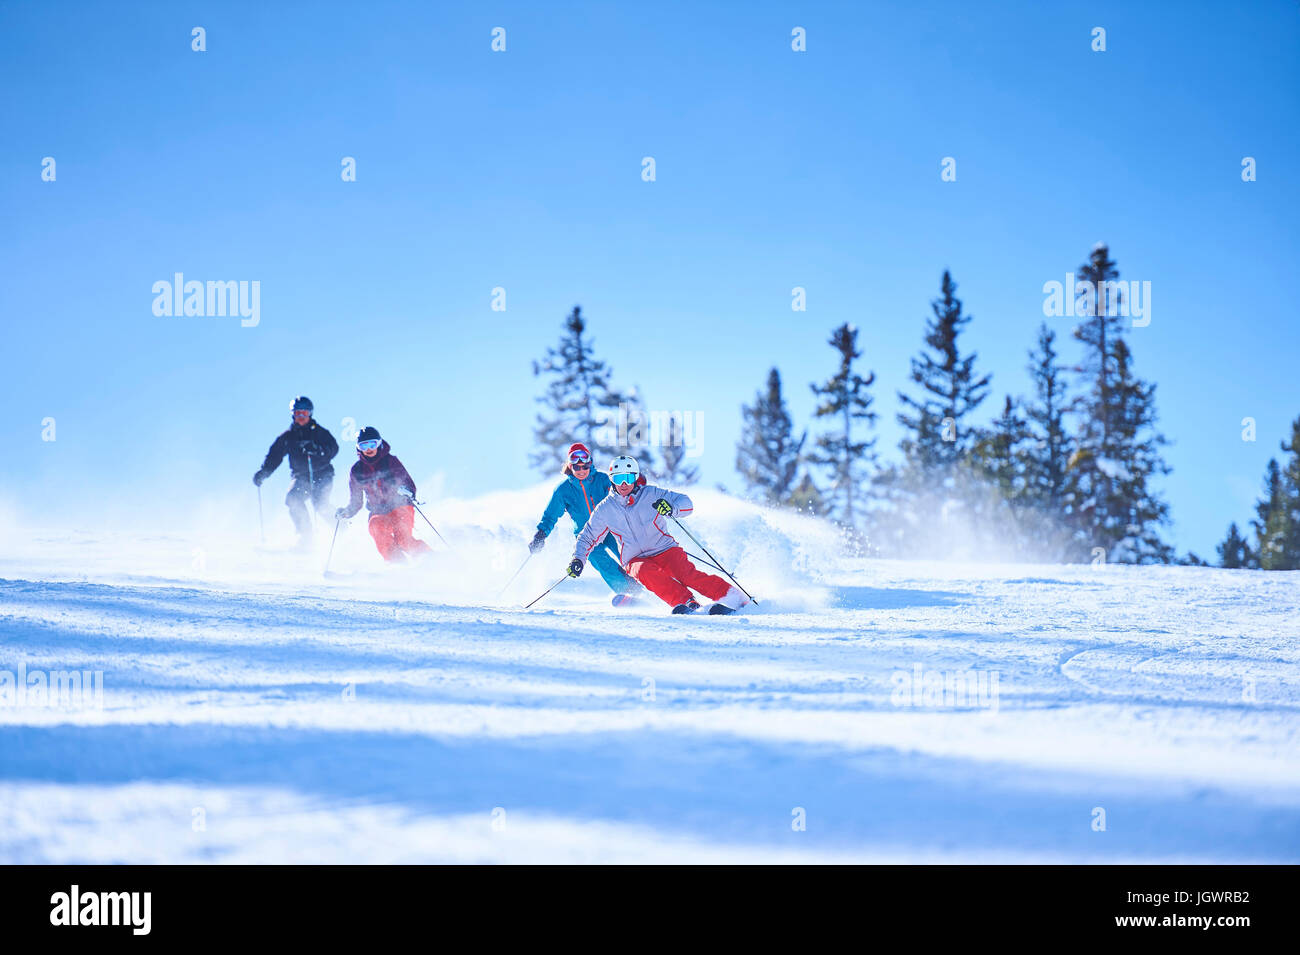 Male and female skiers skiing down snow covered ski slope, Aspen, Colorado, USA - Stock Image